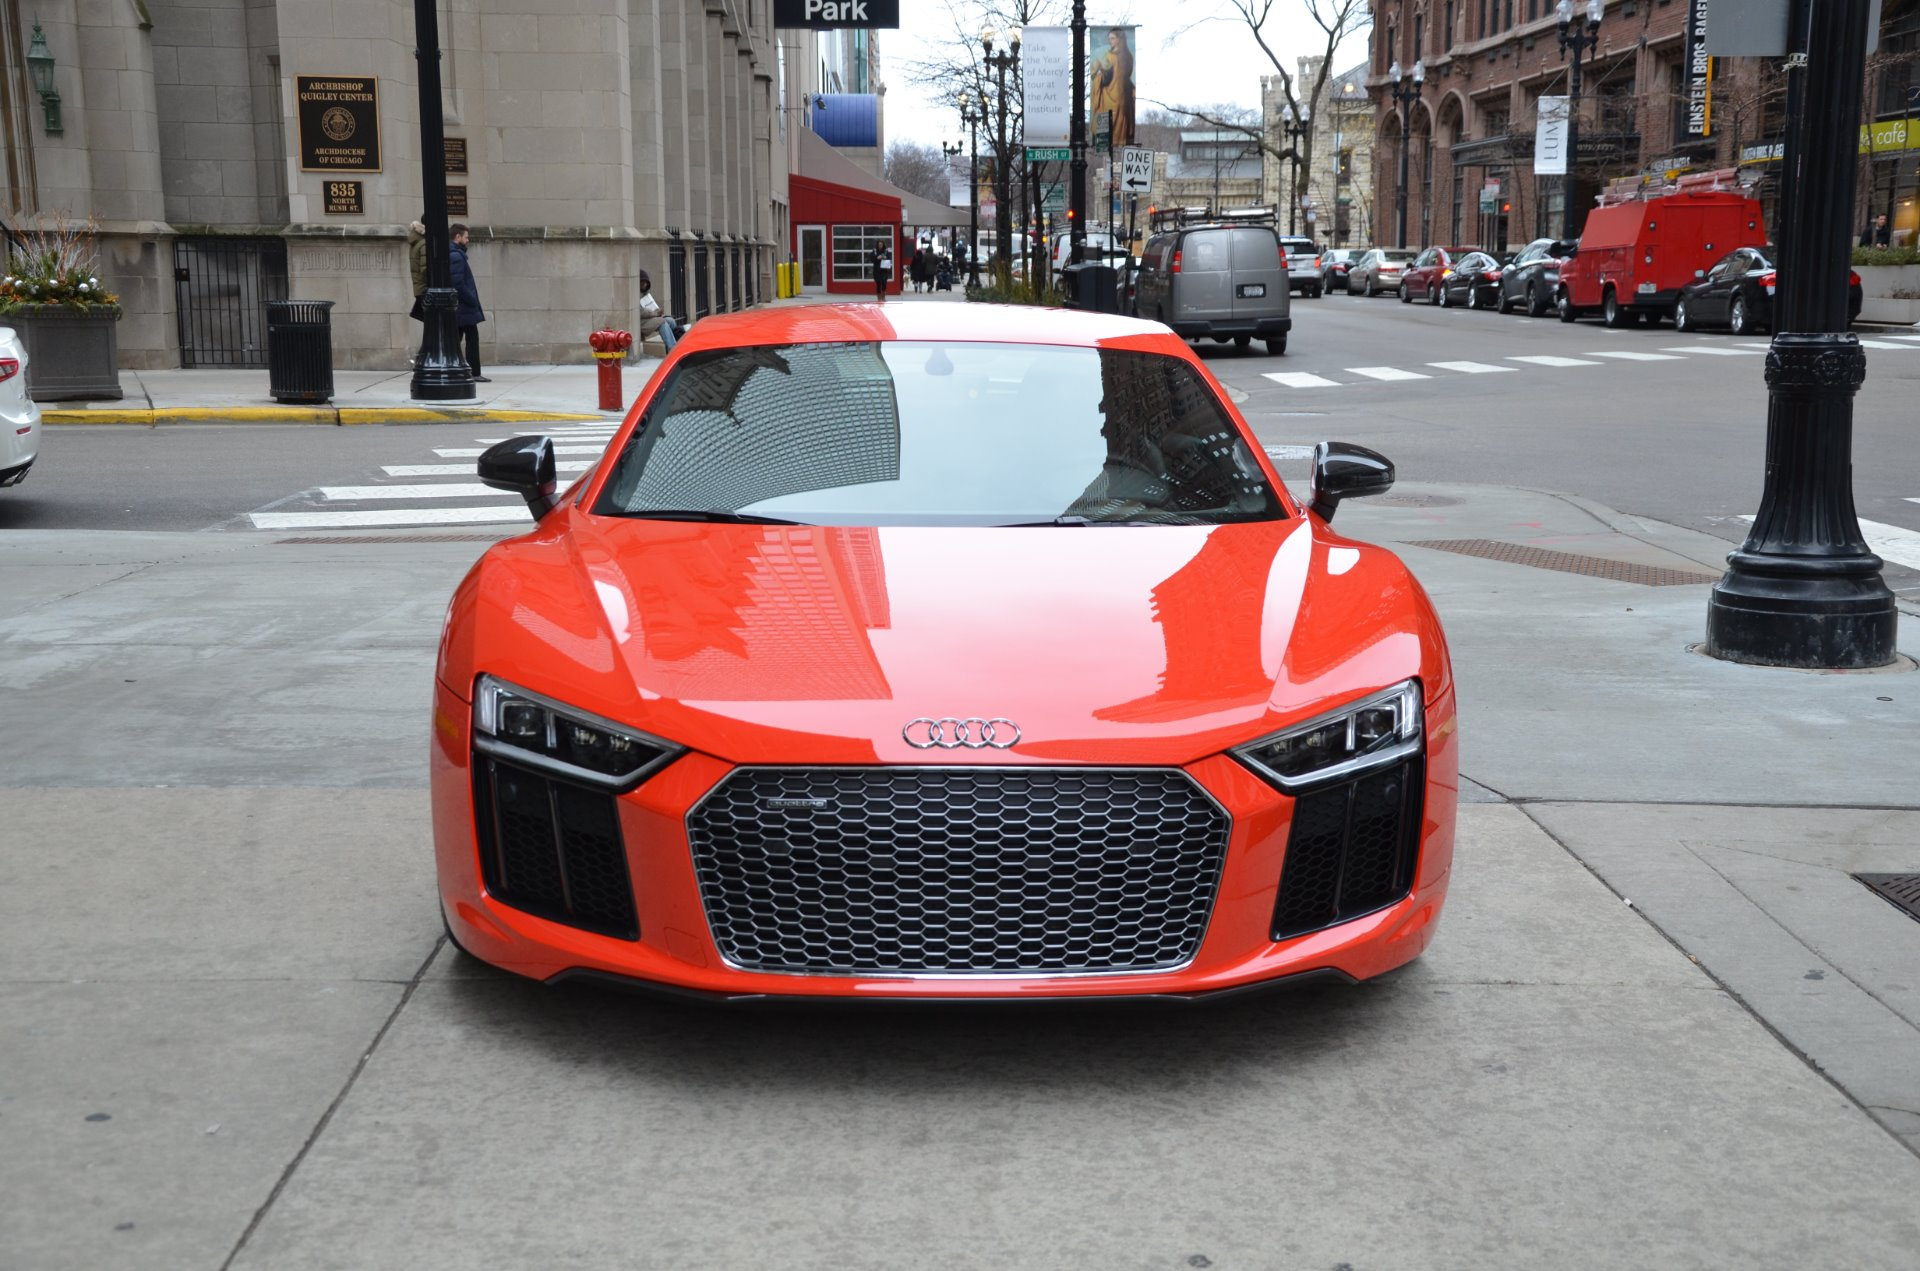 2017 audi r8 v10 plus stock l283a for sale near chicago il il audi dealer. Black Bedroom Furniture Sets. Home Design Ideas